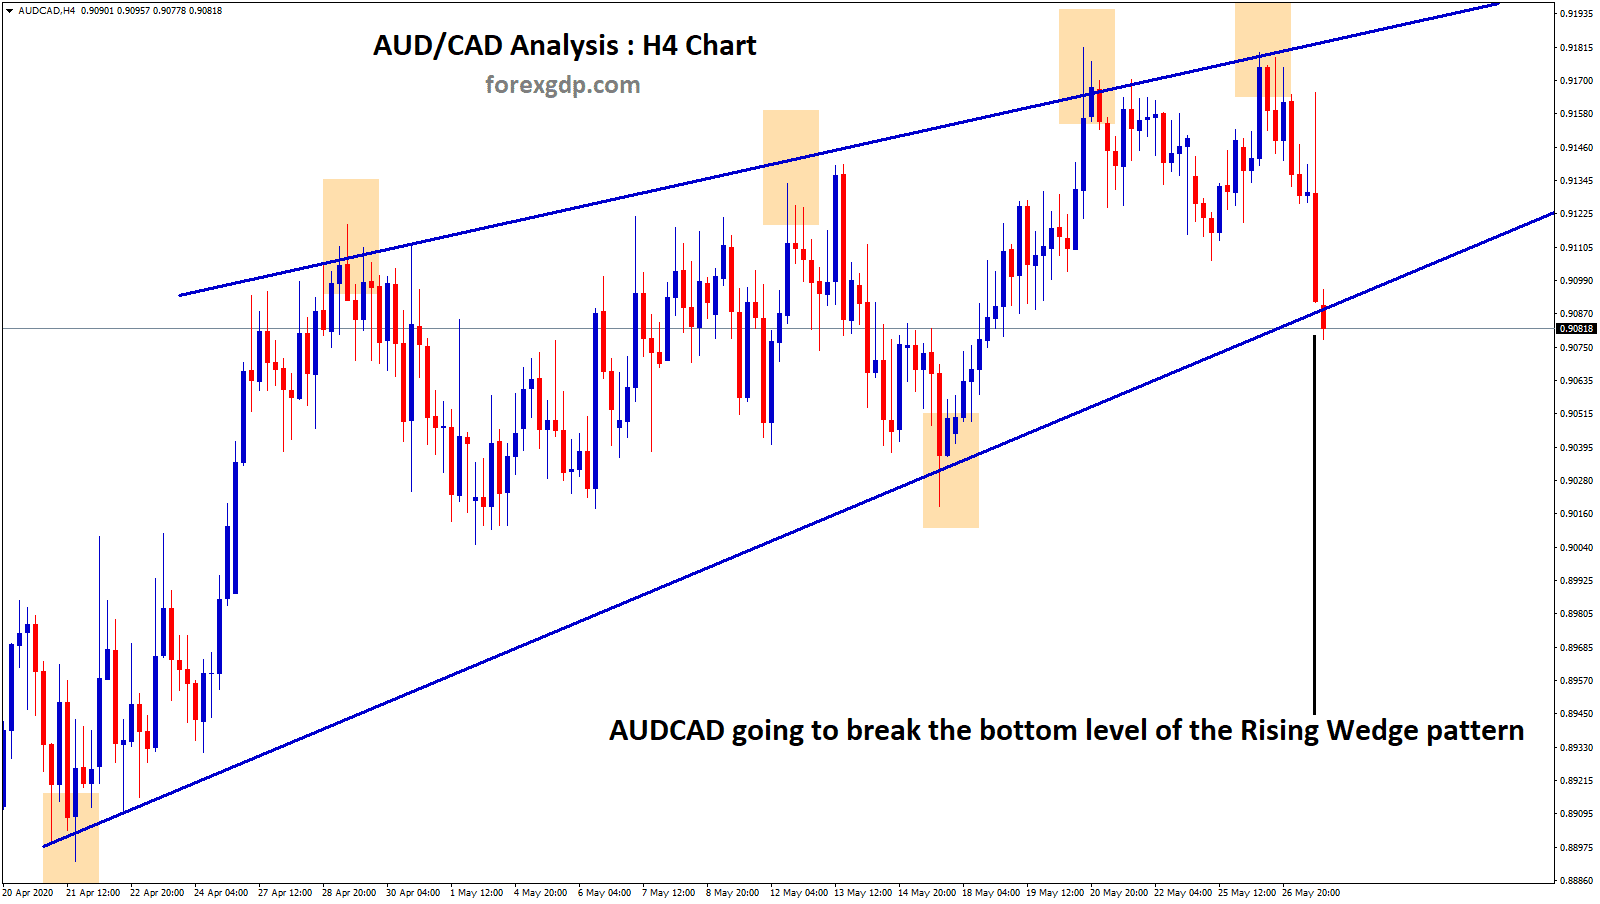 AUDCAD rising wedge pattern going to break the bottom